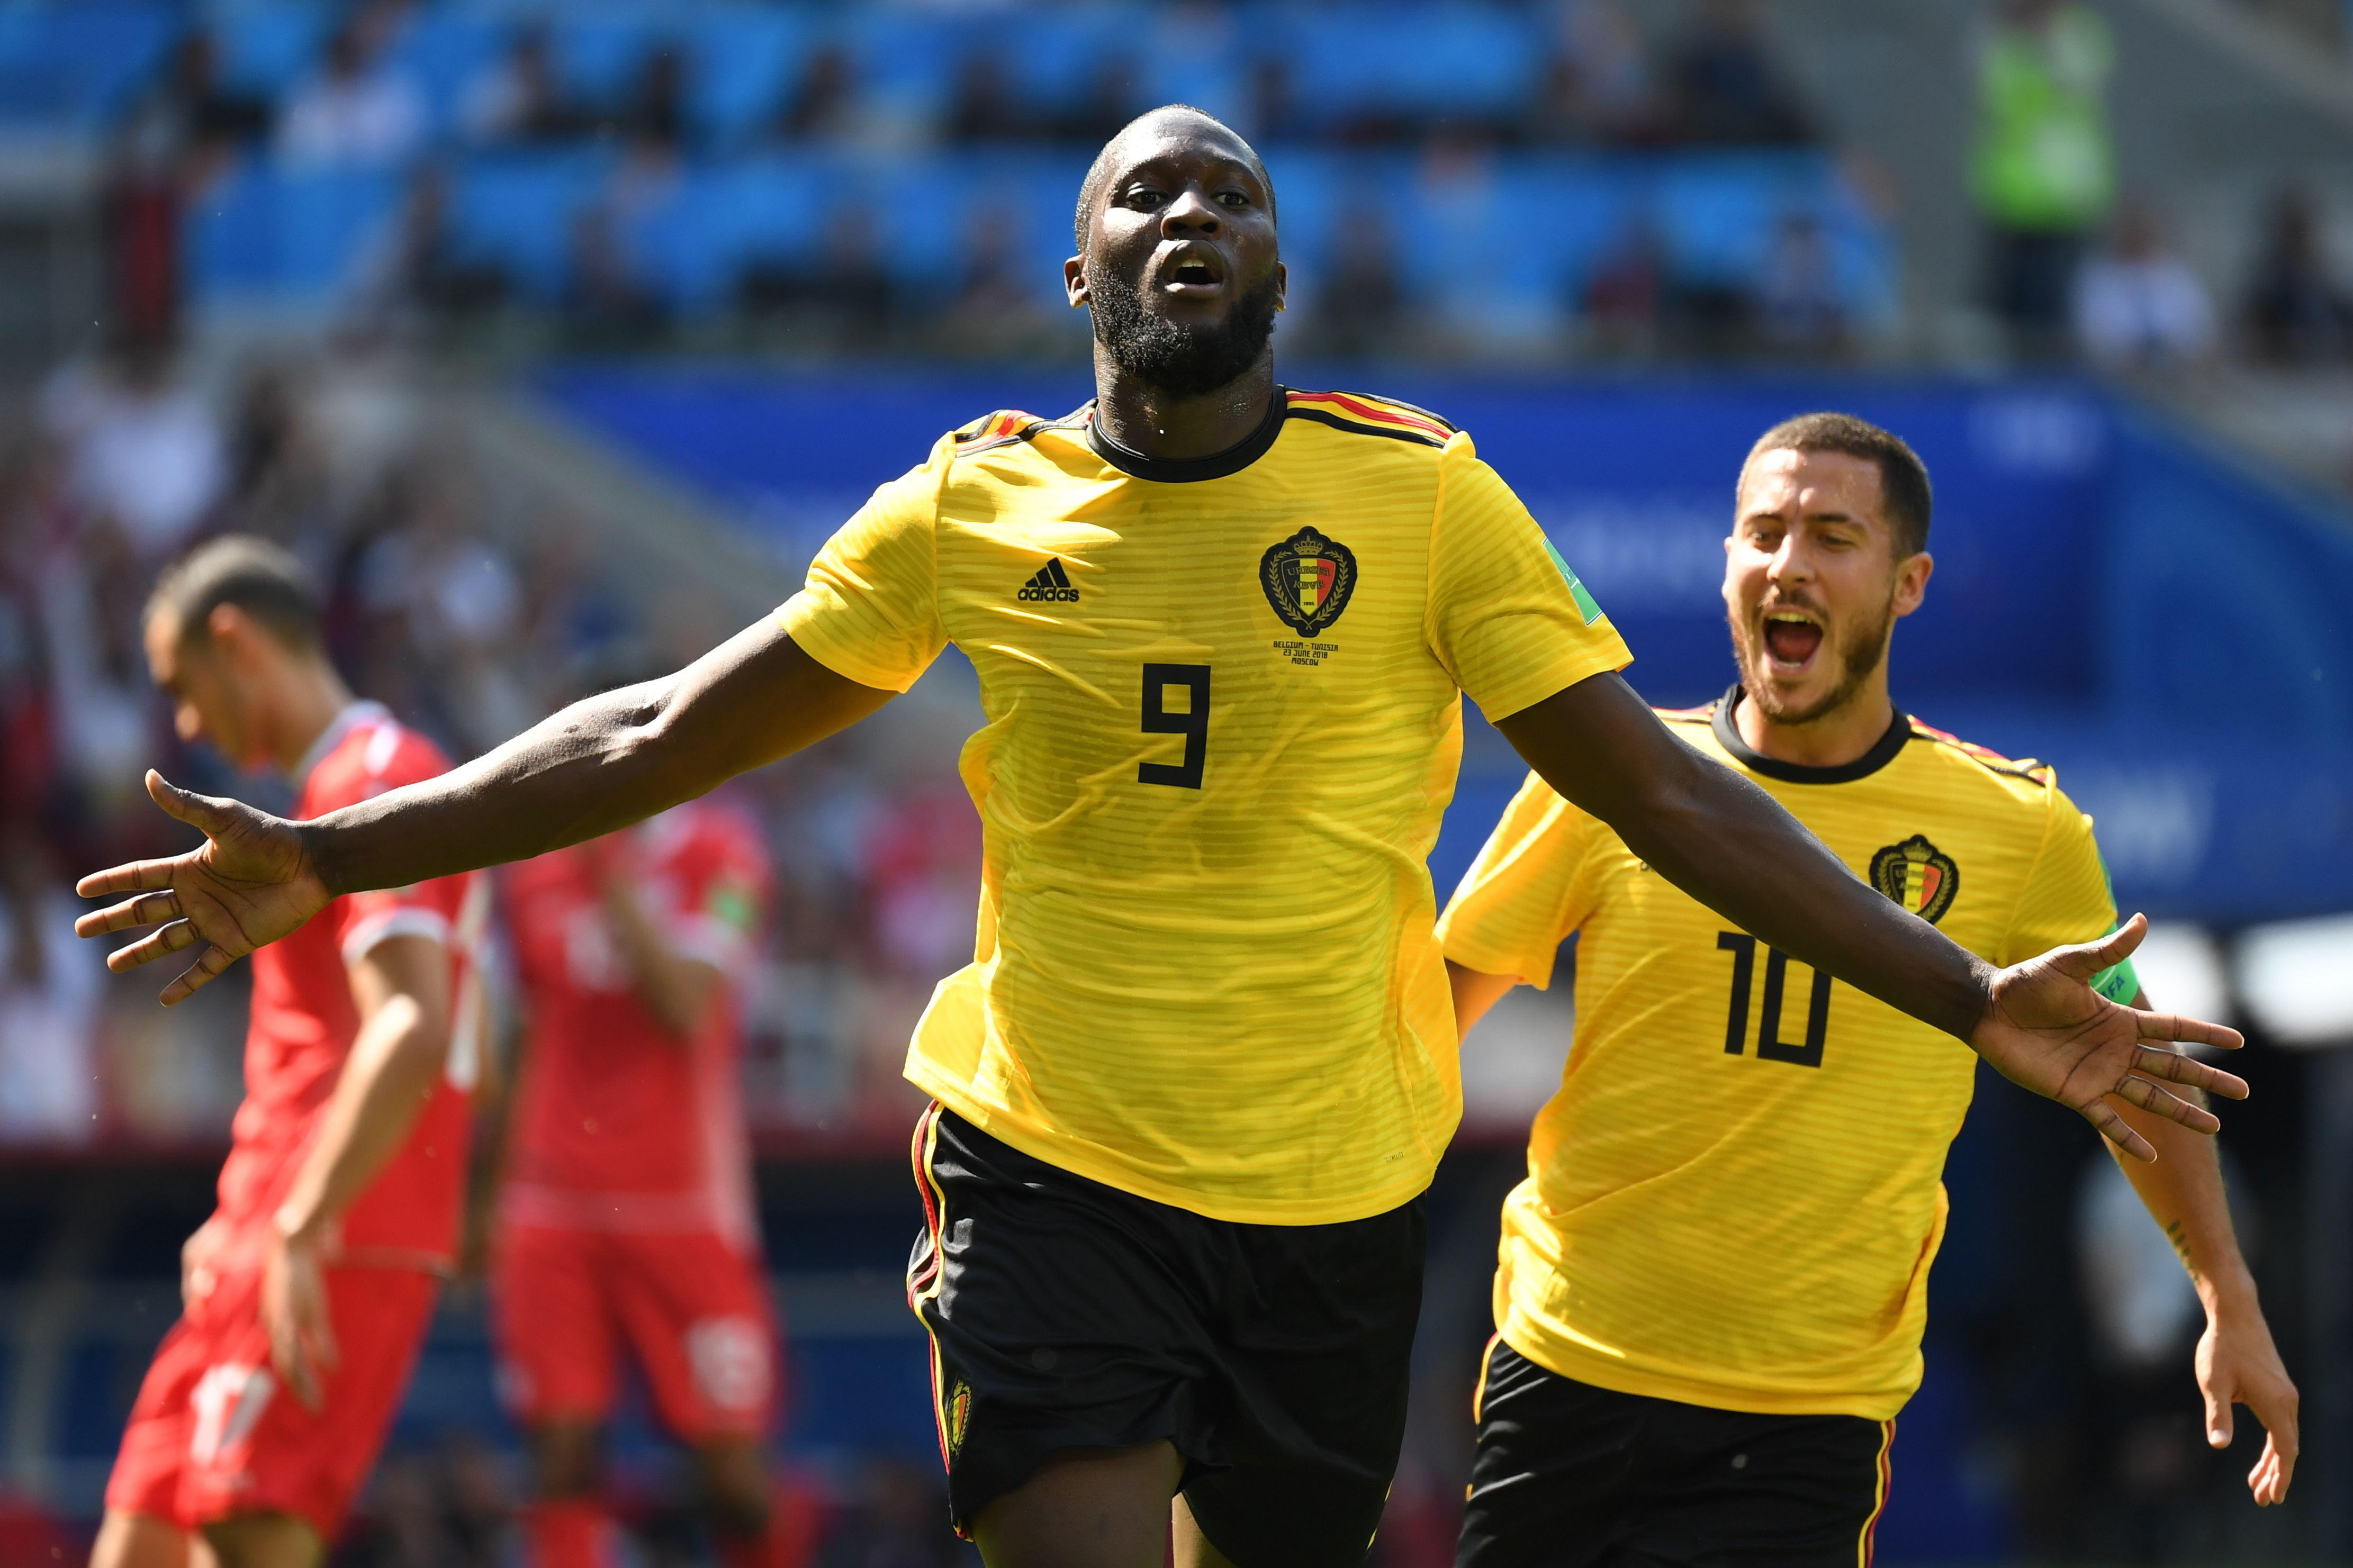 Belgium's forward Romelu Lukaku celebrates after scoring against Tunisia.